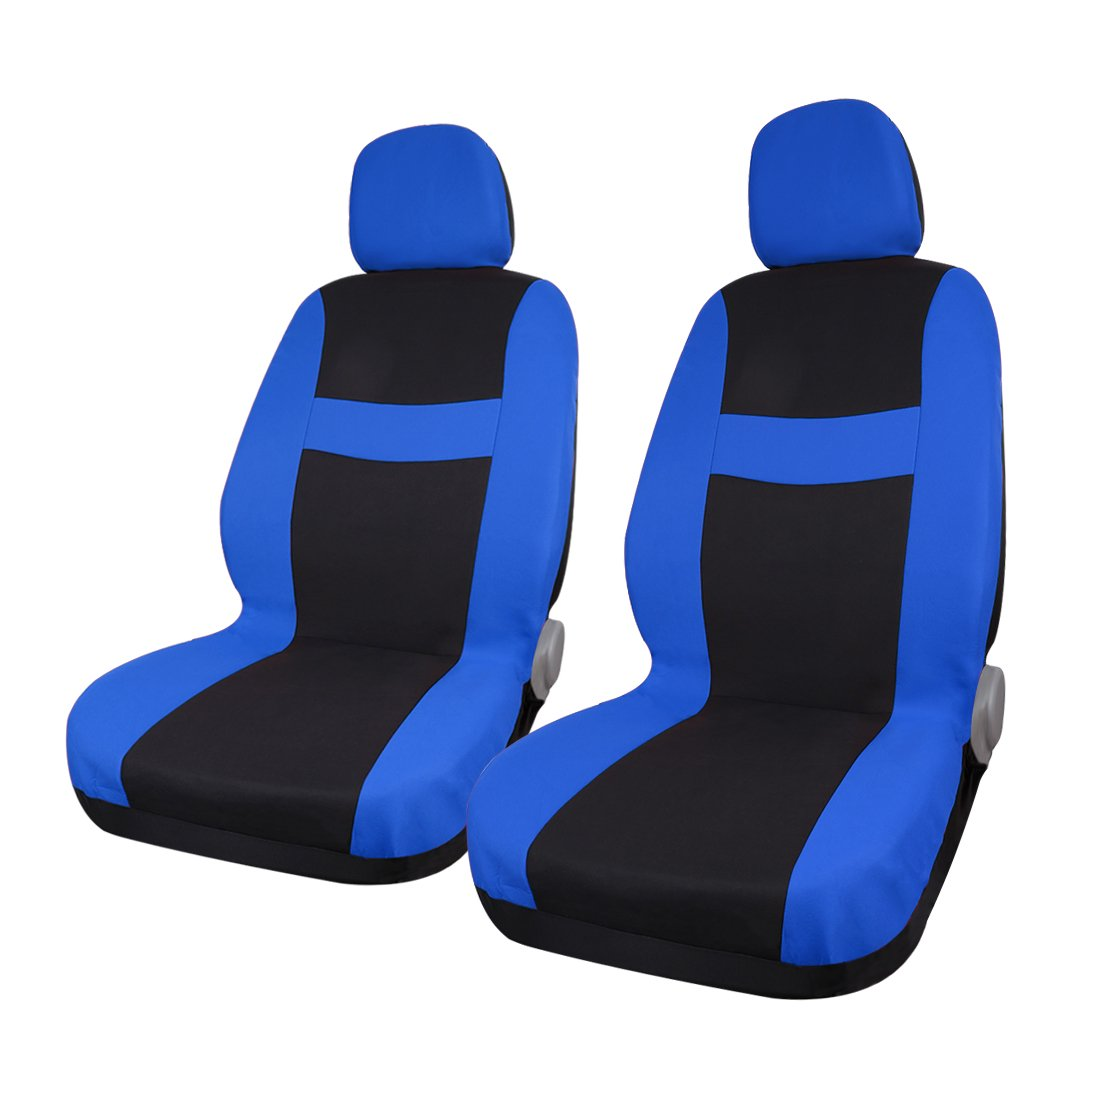 Fabulous Universal Car Seat Covers For Auto Truck W Breathable Headrest Blue Black Pdpeps Interior Chair Design Pdpepsorg